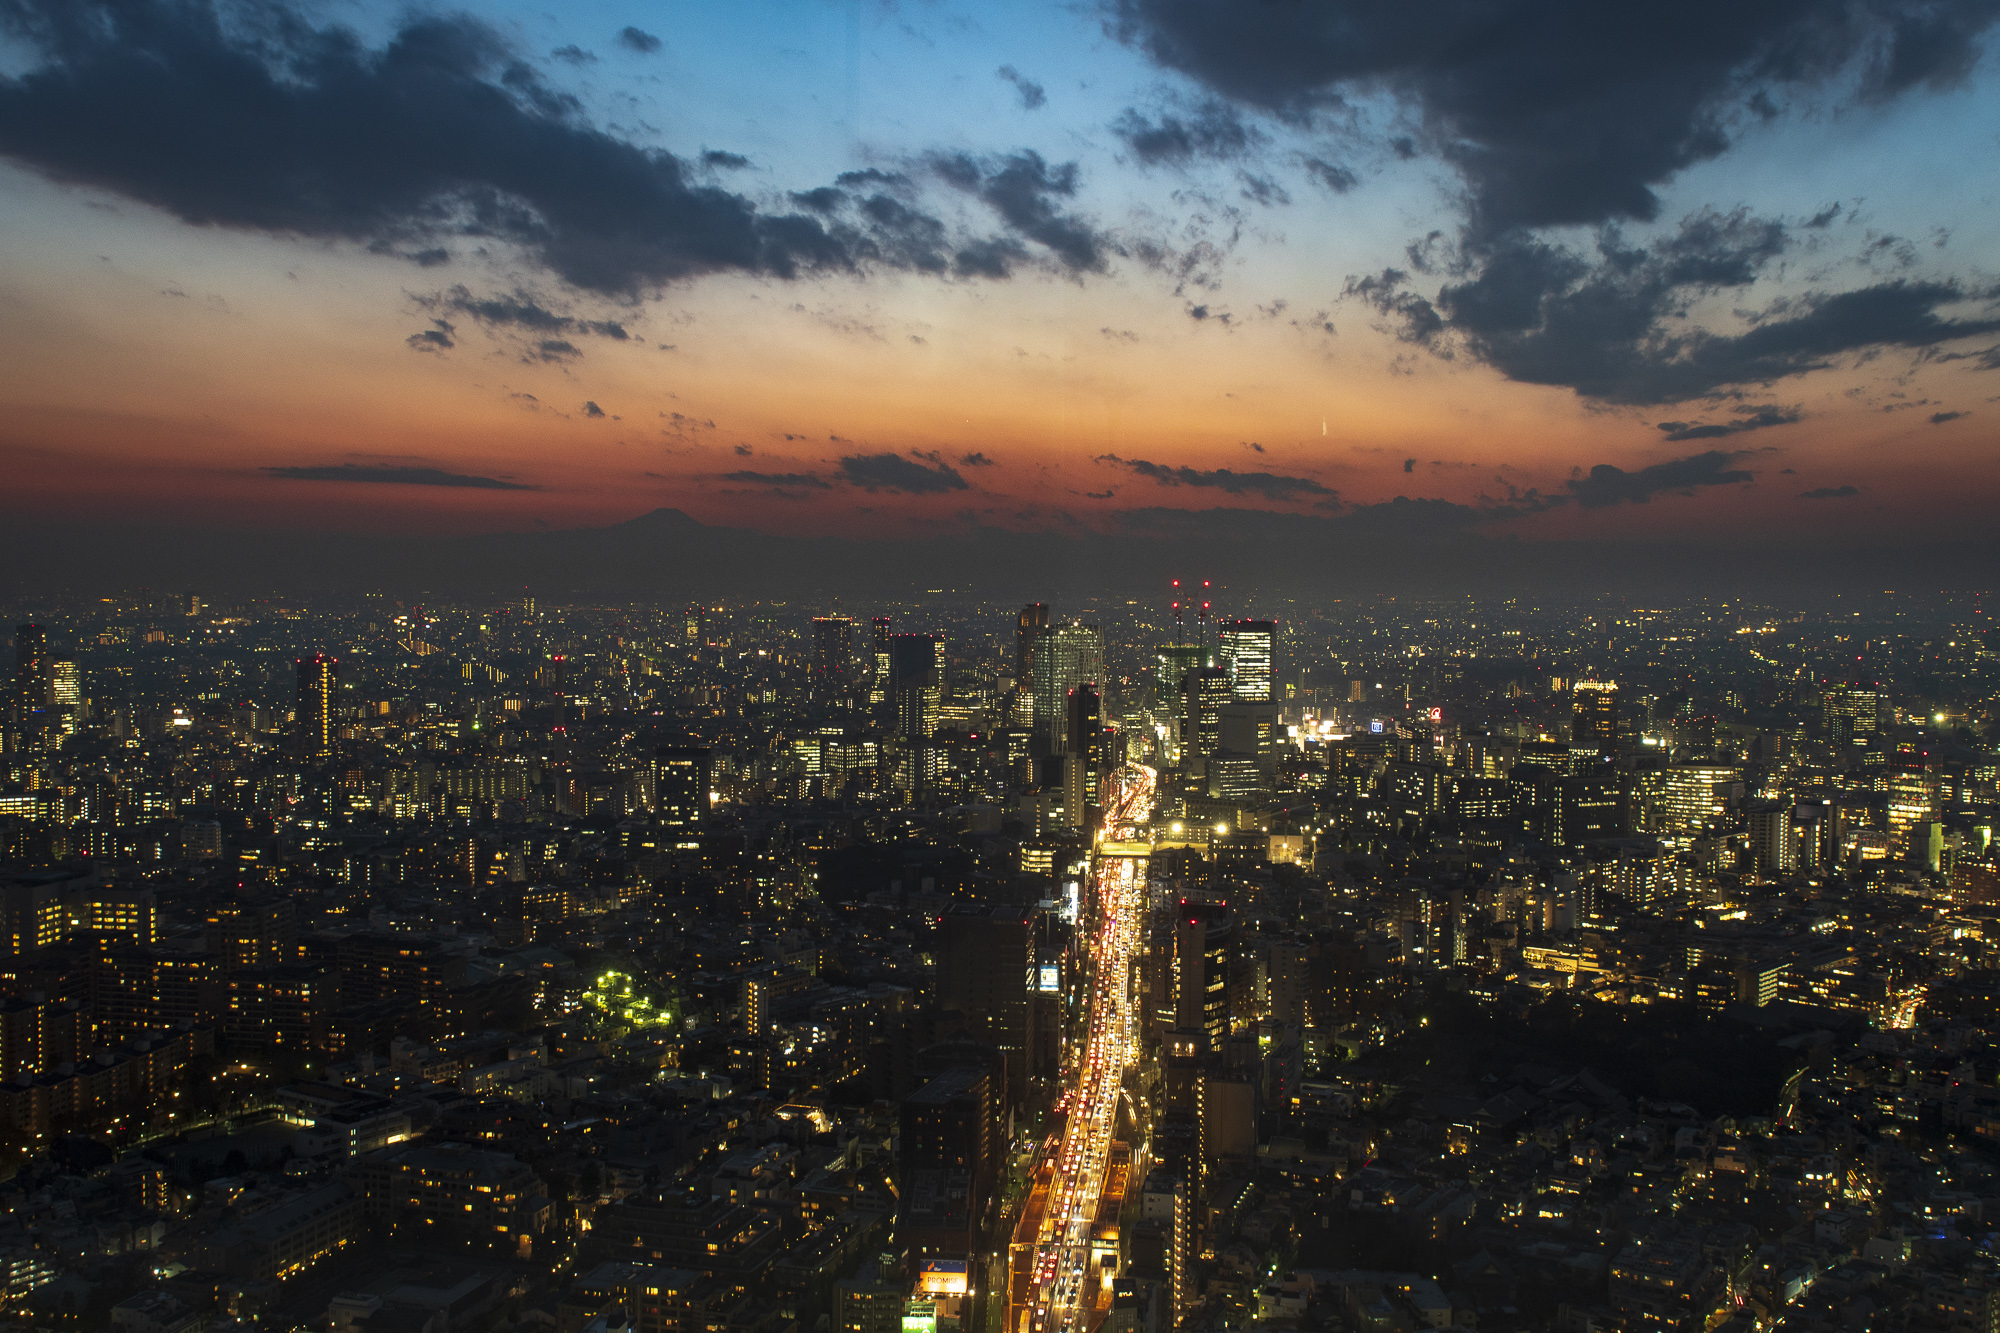 Tokyo from the Mori Tower  PHOTOGRAPHY: ALEXANDER J.E. BRADLEY • NIKON D500 • AF-S NIKKOR 24-70MM Ƒ/2.8G ED @ 24MM • Ƒ/8 • 1.6 sec • ISO 100